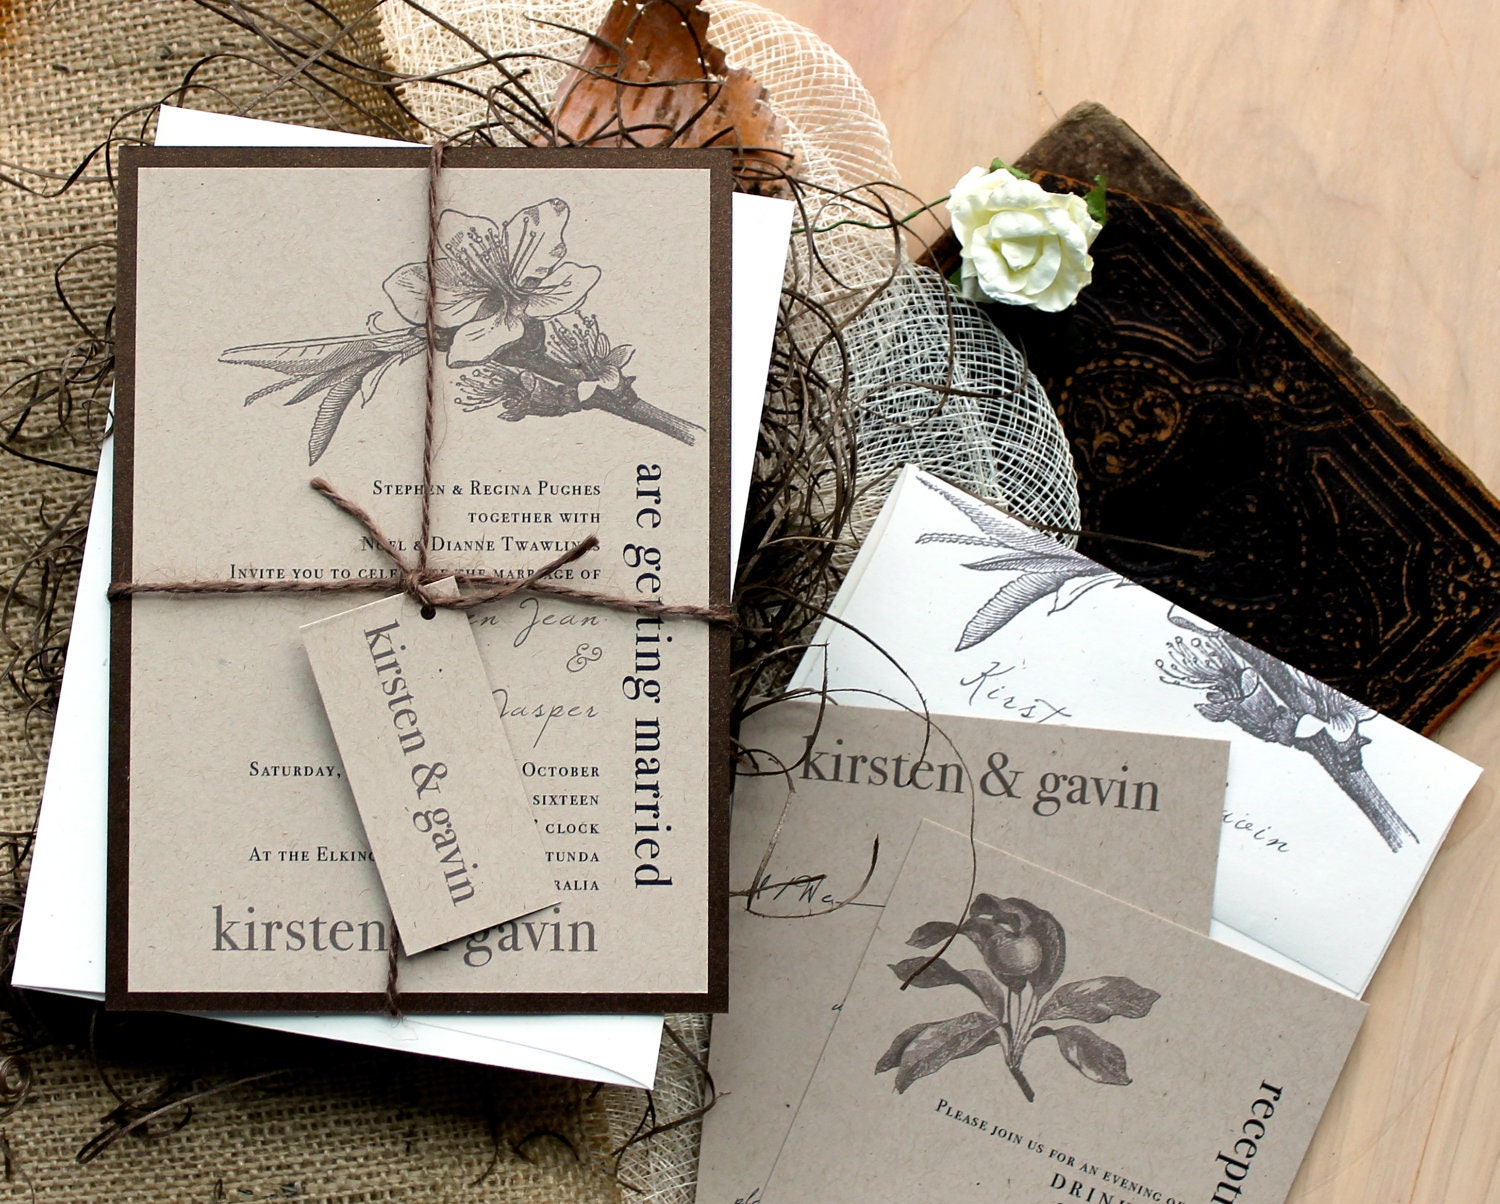 Country Wedding Invitations: Rustic & Chic Wedding Invitations Farm Wedding Country